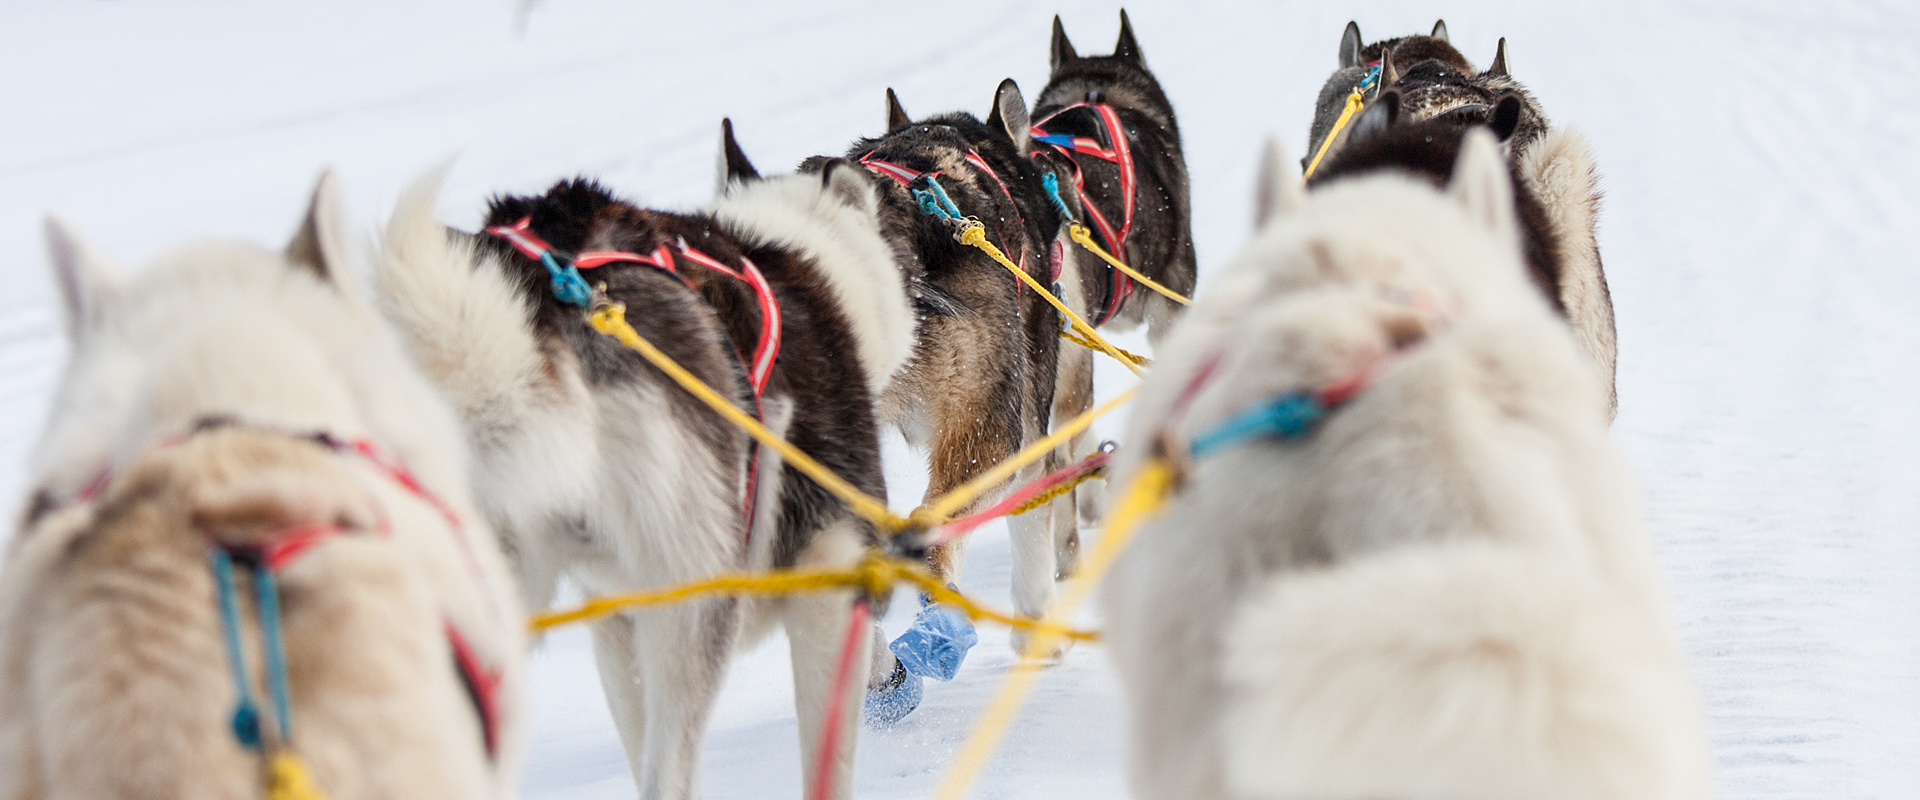 Sleddogs on the move.